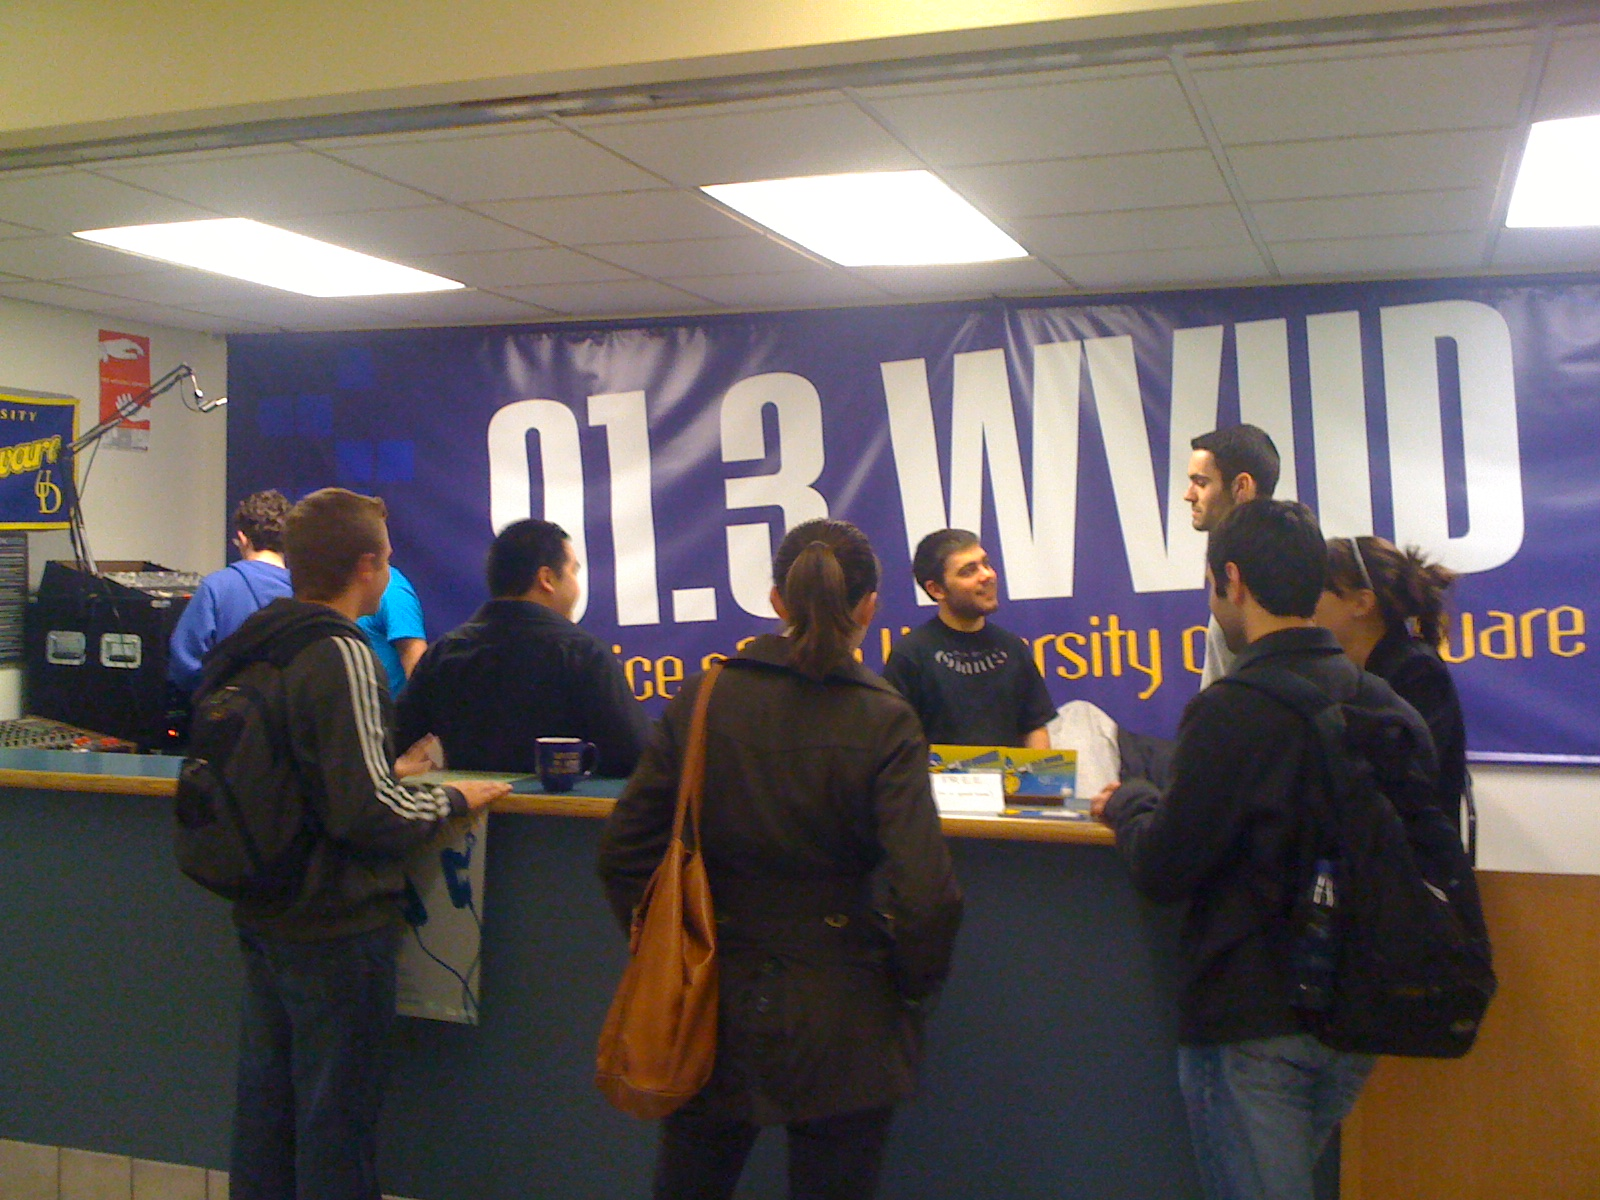 First floor of Perkins...stop by and say hi!